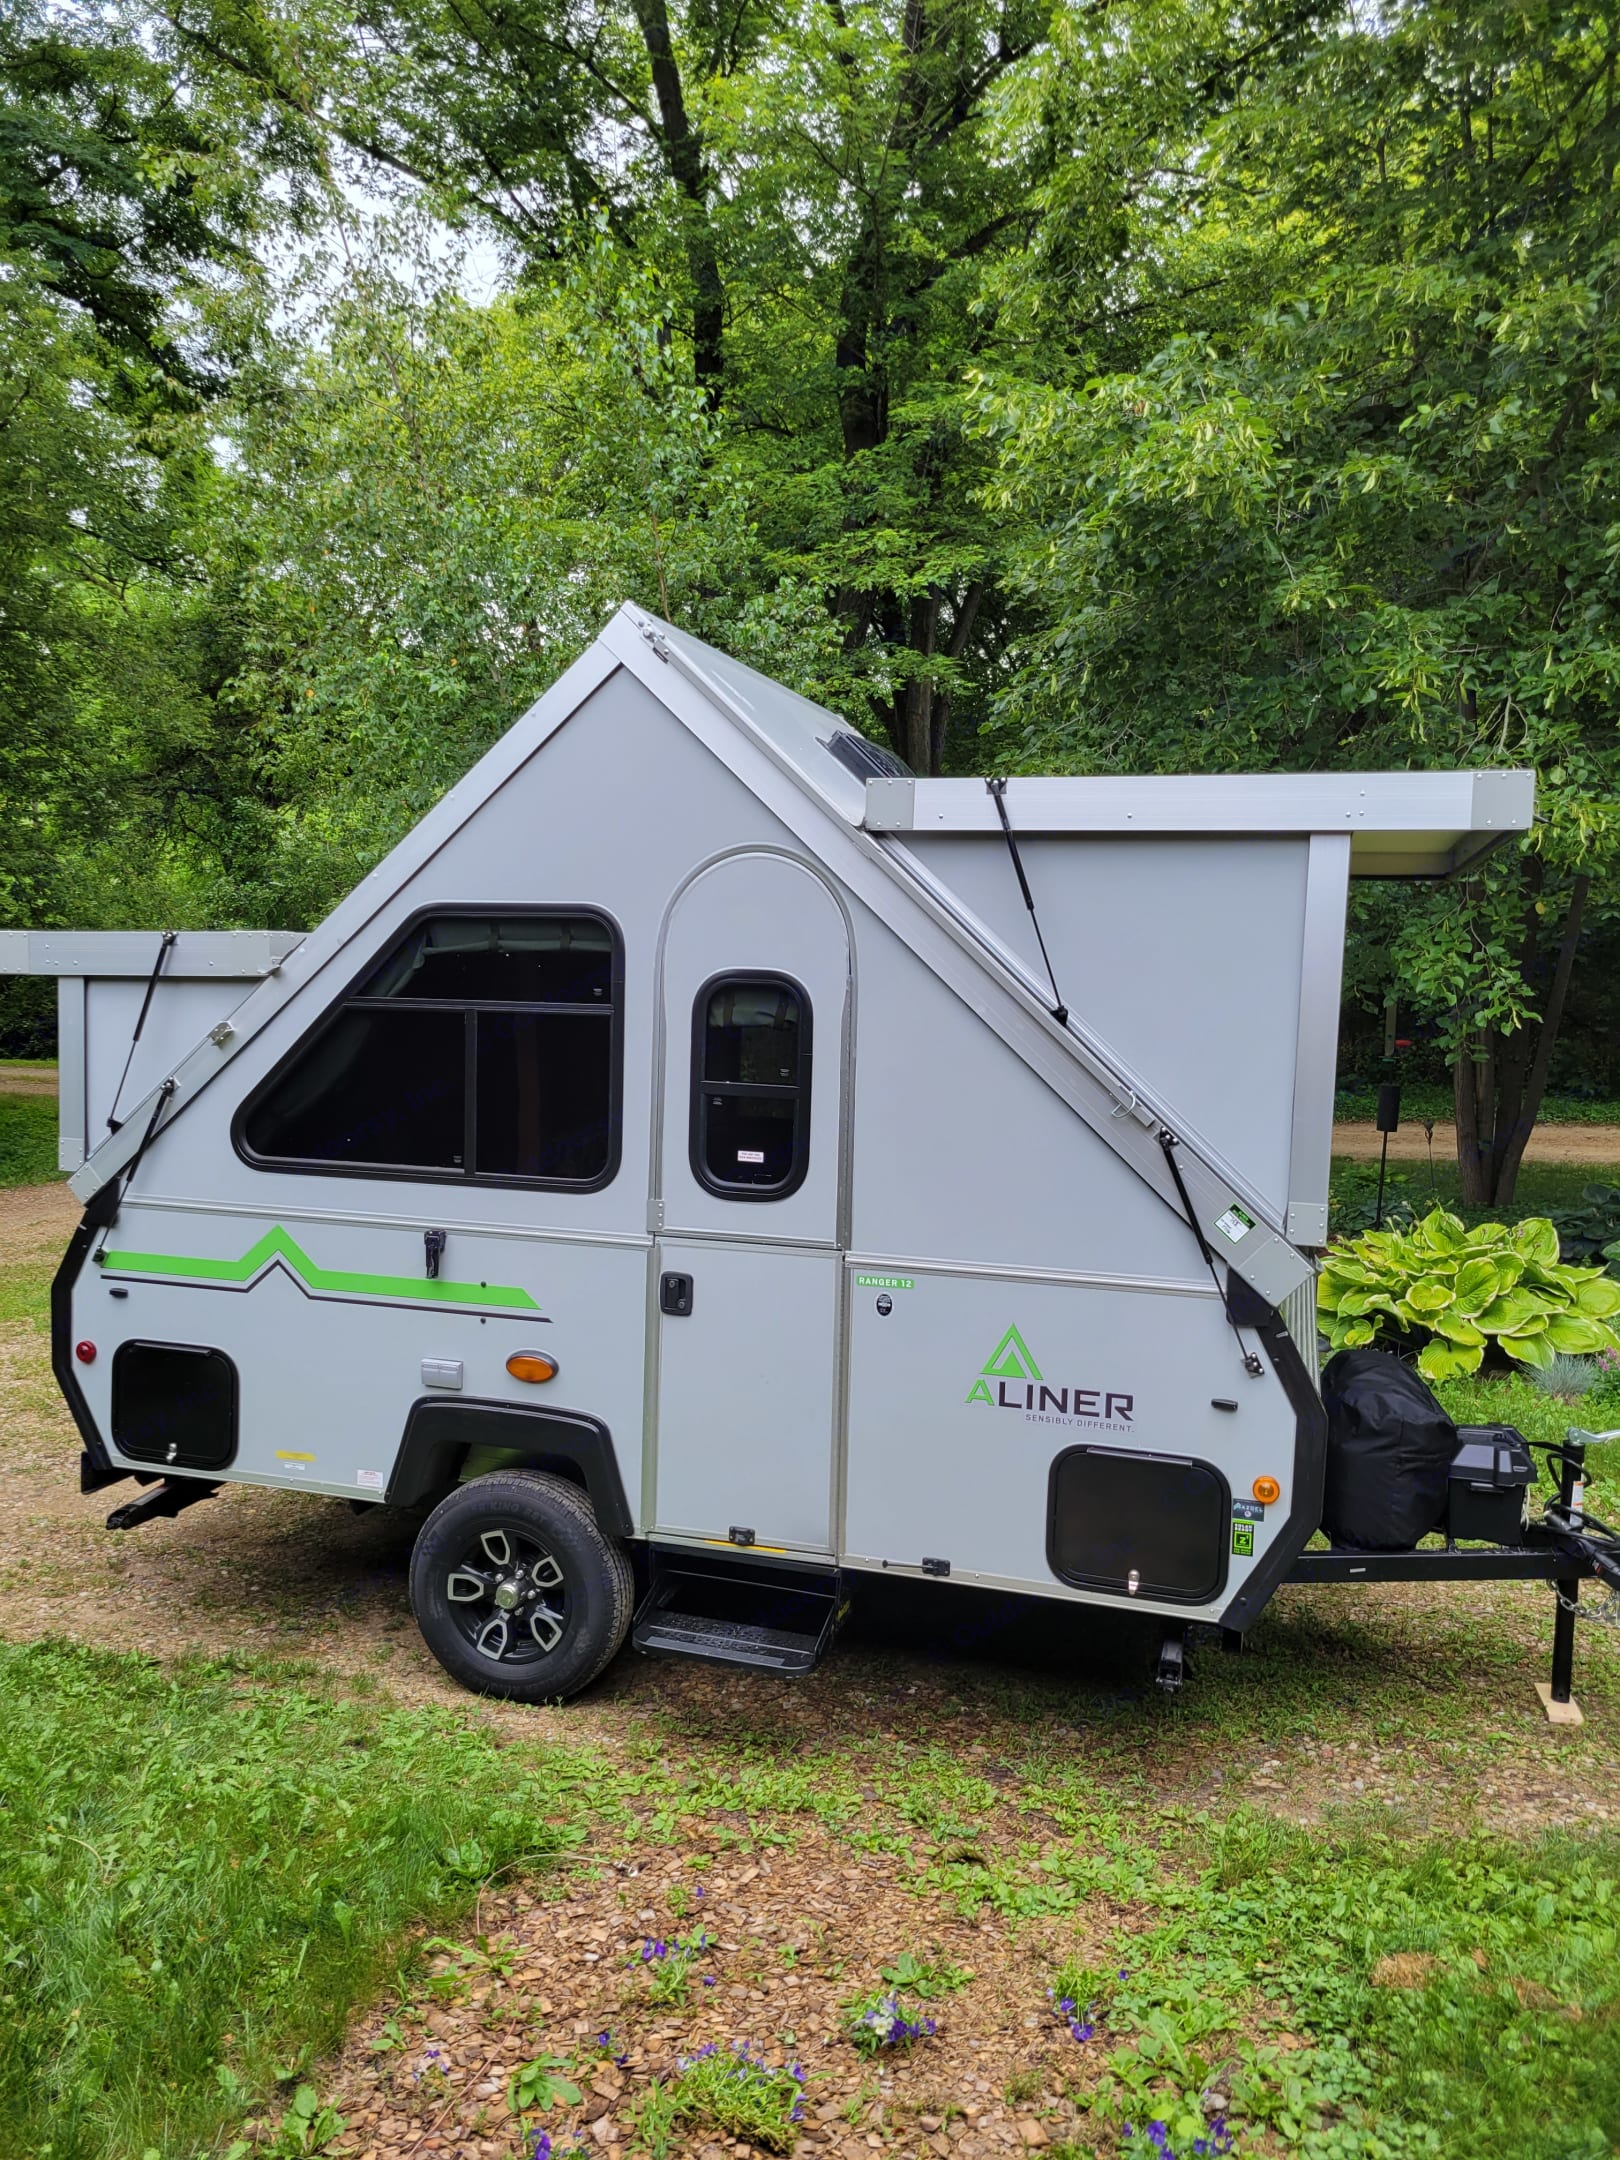 15 ft overall 12 foot cabin all set up with 4 windows that open with screen and 12 volt roof fan beats a tent any day of the week!. A-Liner Ranger 2021